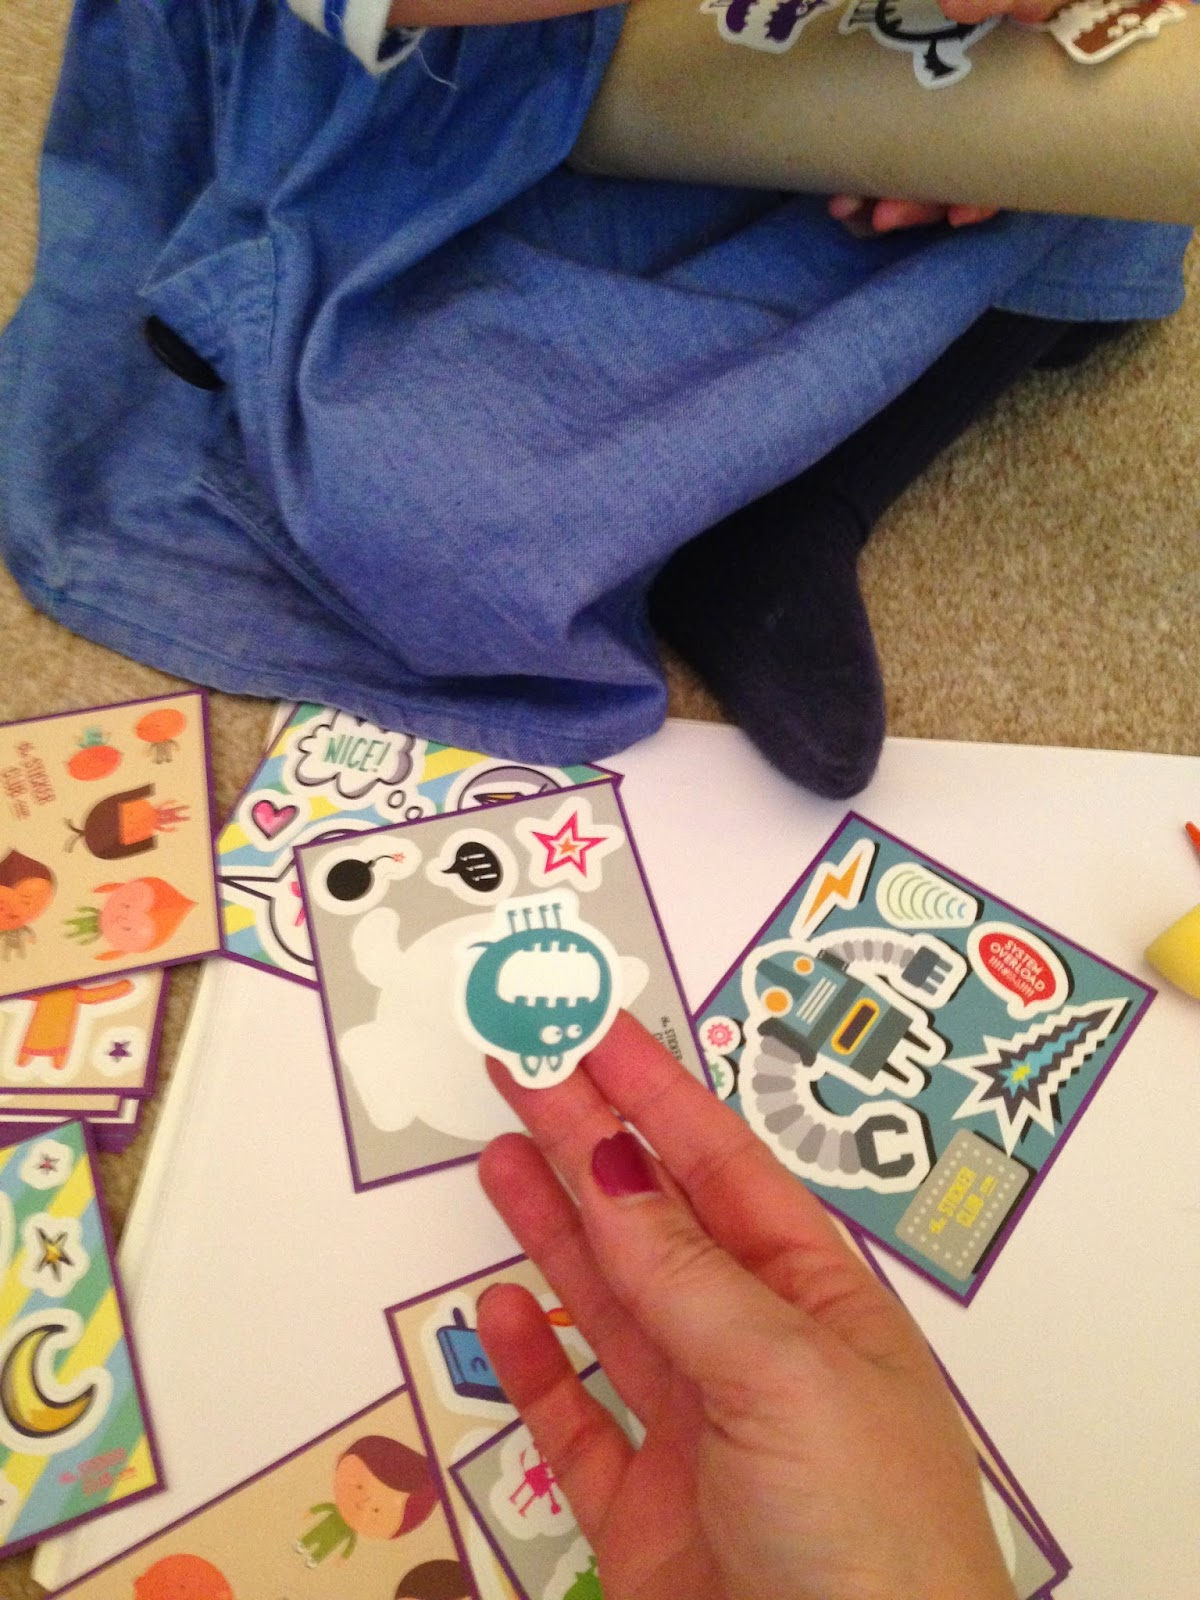 mamasVIB   V. I. BUSY BEES: Wanna join The Sticker Club? Here's how… and giveaway too!   the sticker club   sticker subscriptions   stickers for kids   playtime   stickers   messy play   things to do with kids   sticker club   stickers   stickers in the post   post   subscription   stickers in the mail   mamasVIB